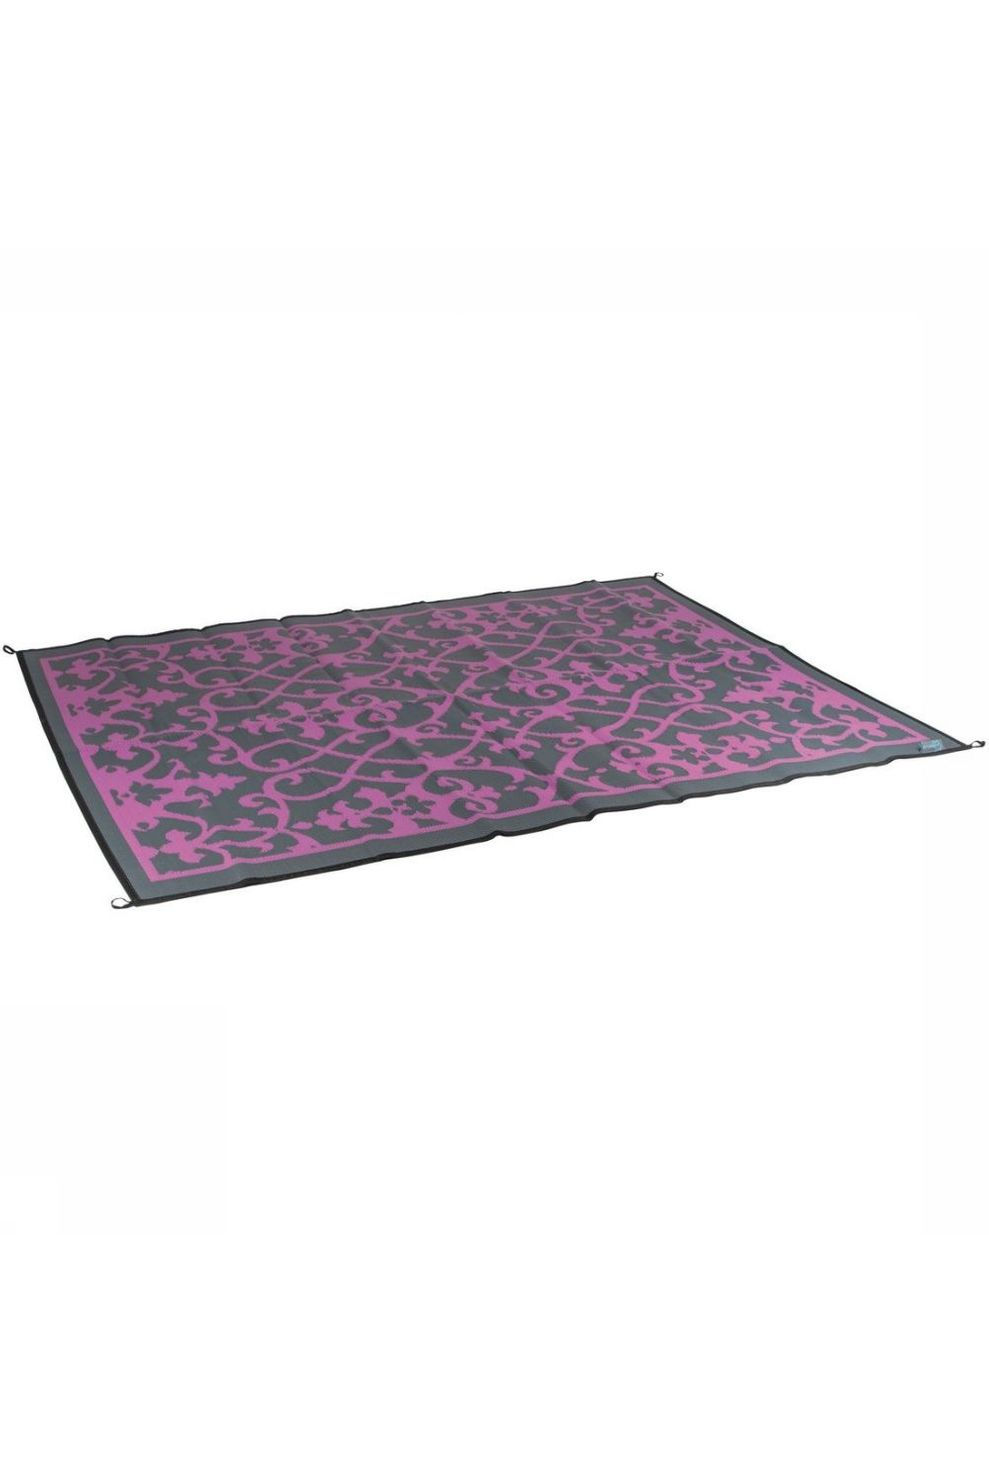 Bo-Leisure Diverse Chill Mat Lounge - Roze/Grijs